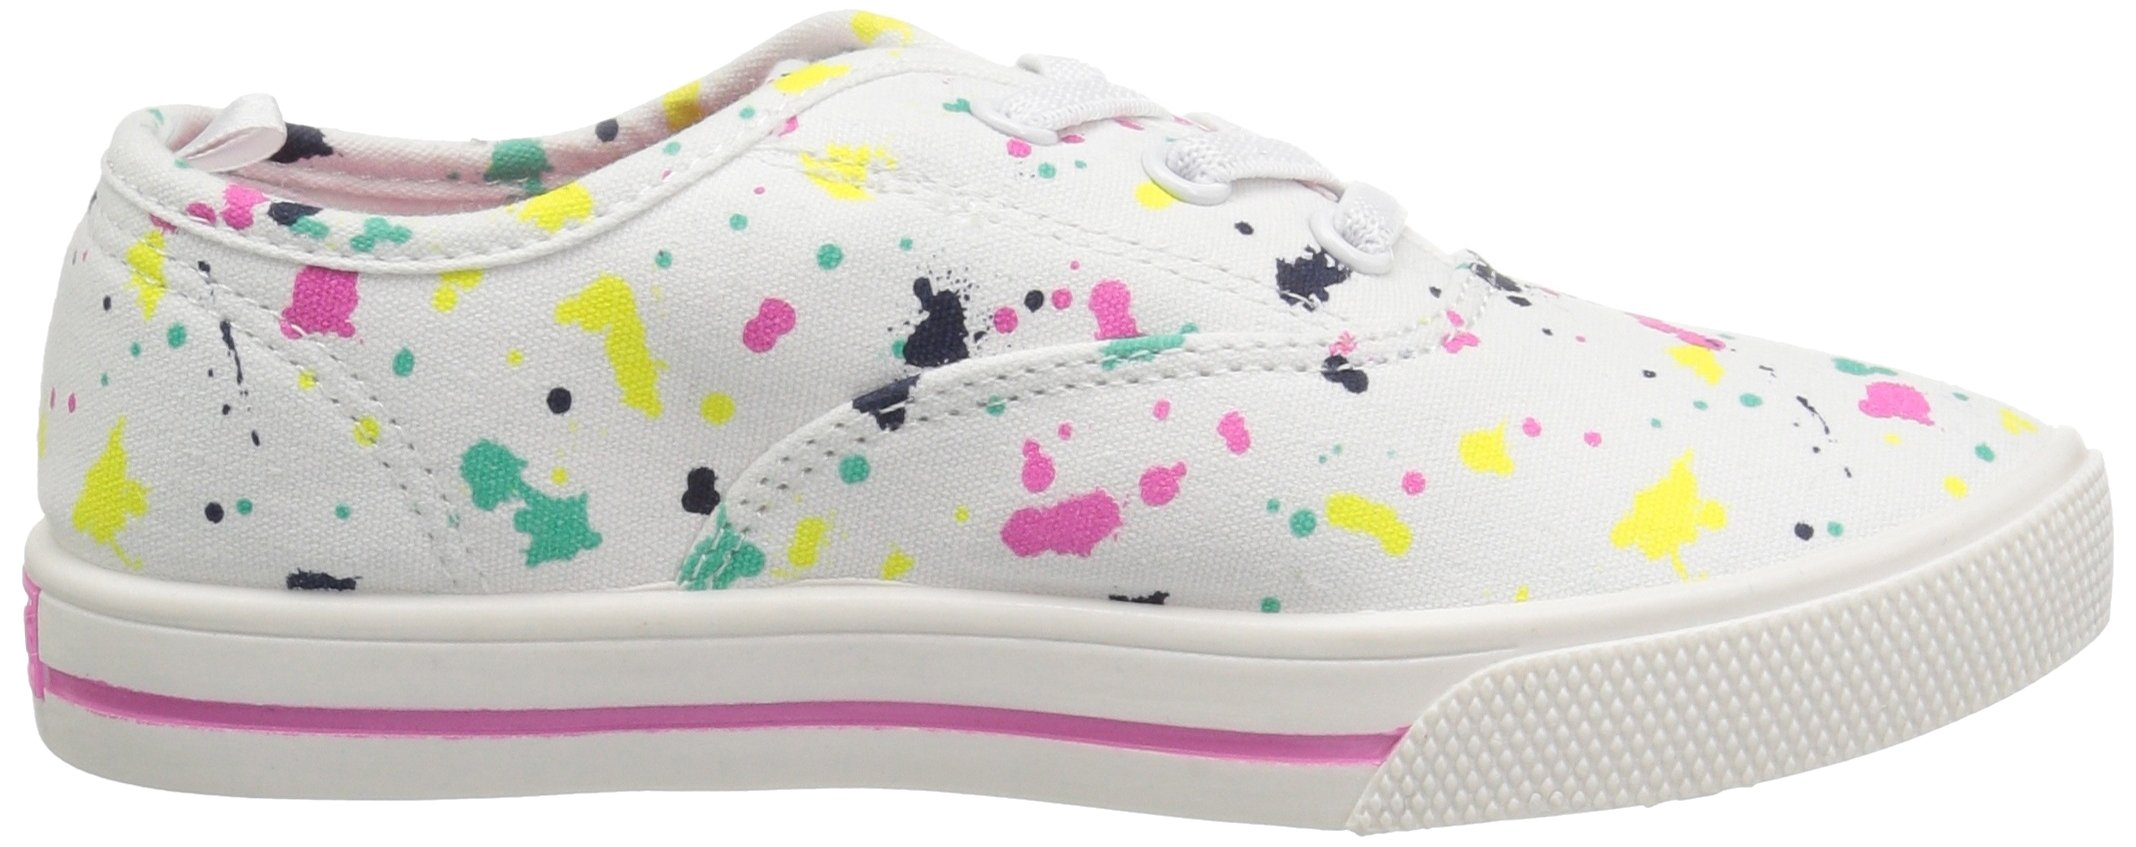 Carter's Piper Girl's Casual Sneaker, White/Print, 3 M US Little Kid by Carter's (Image #7)